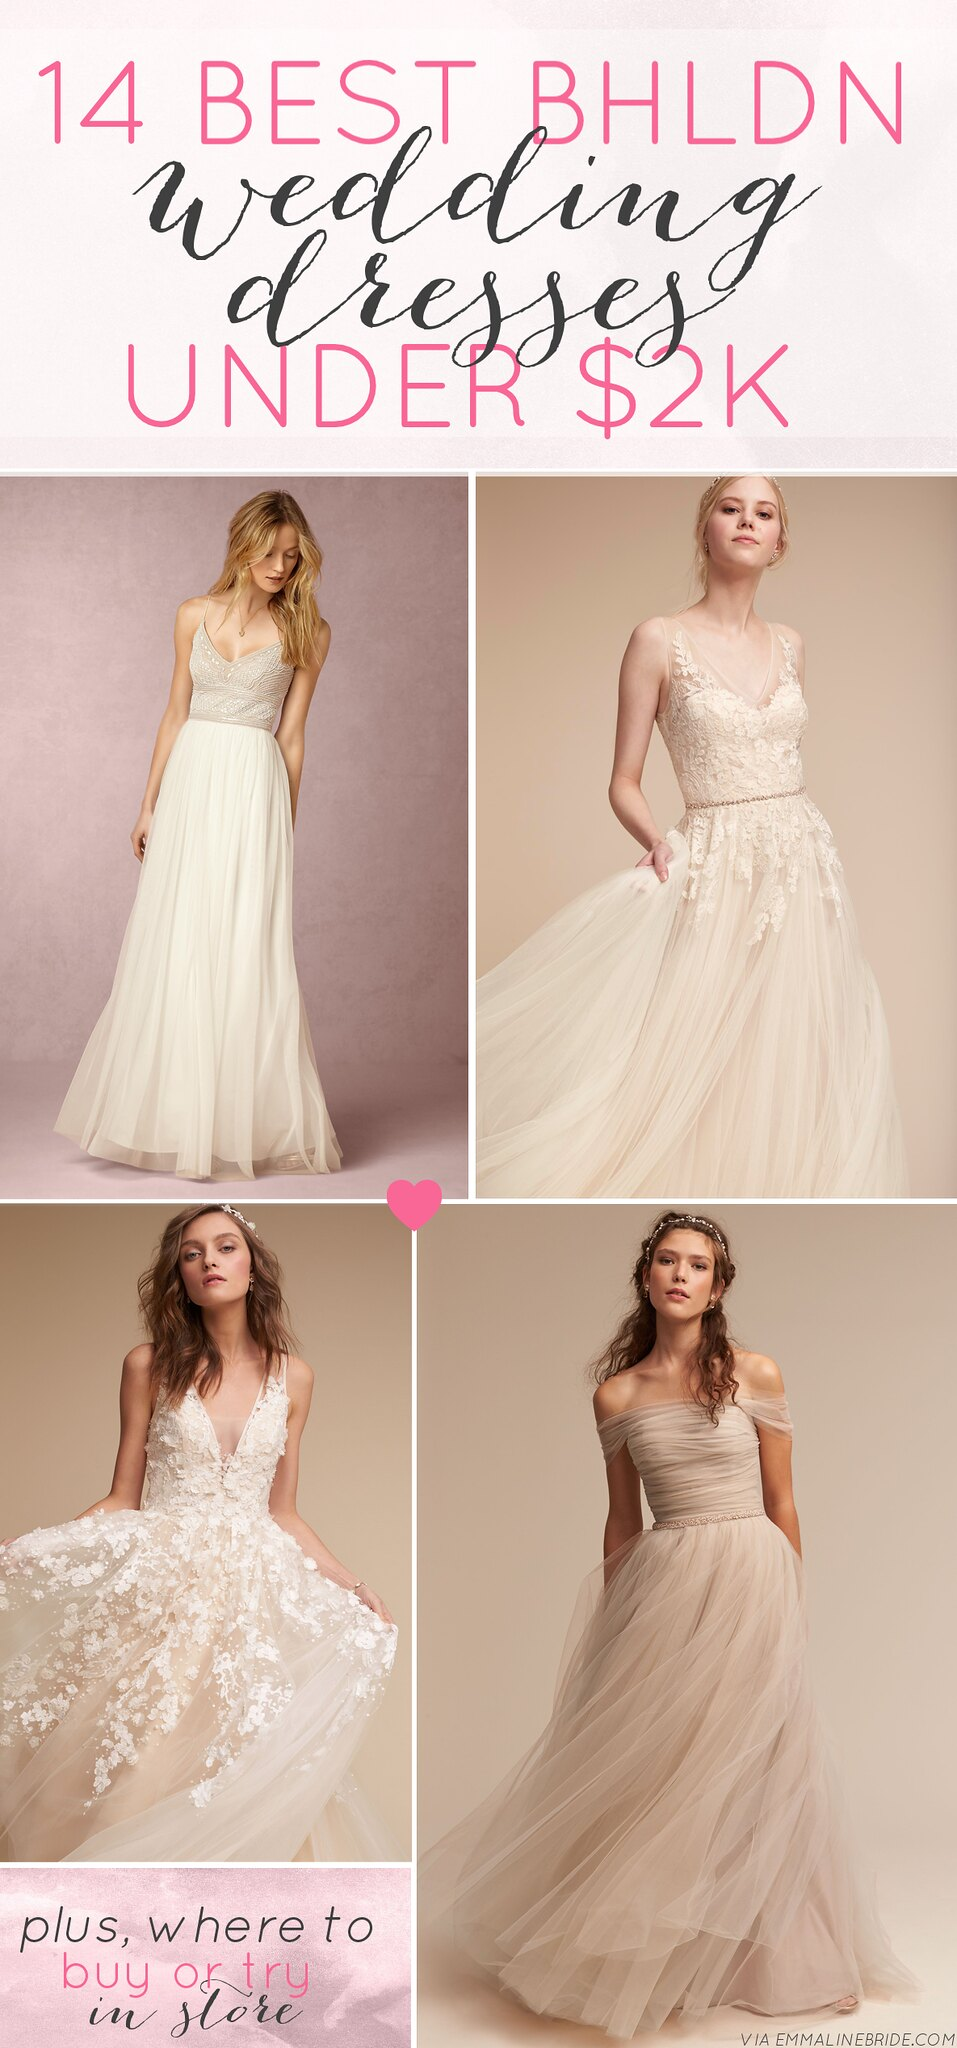 Where to buy bhldn wedding dresses in store online for Anthropologie beholden wedding dress